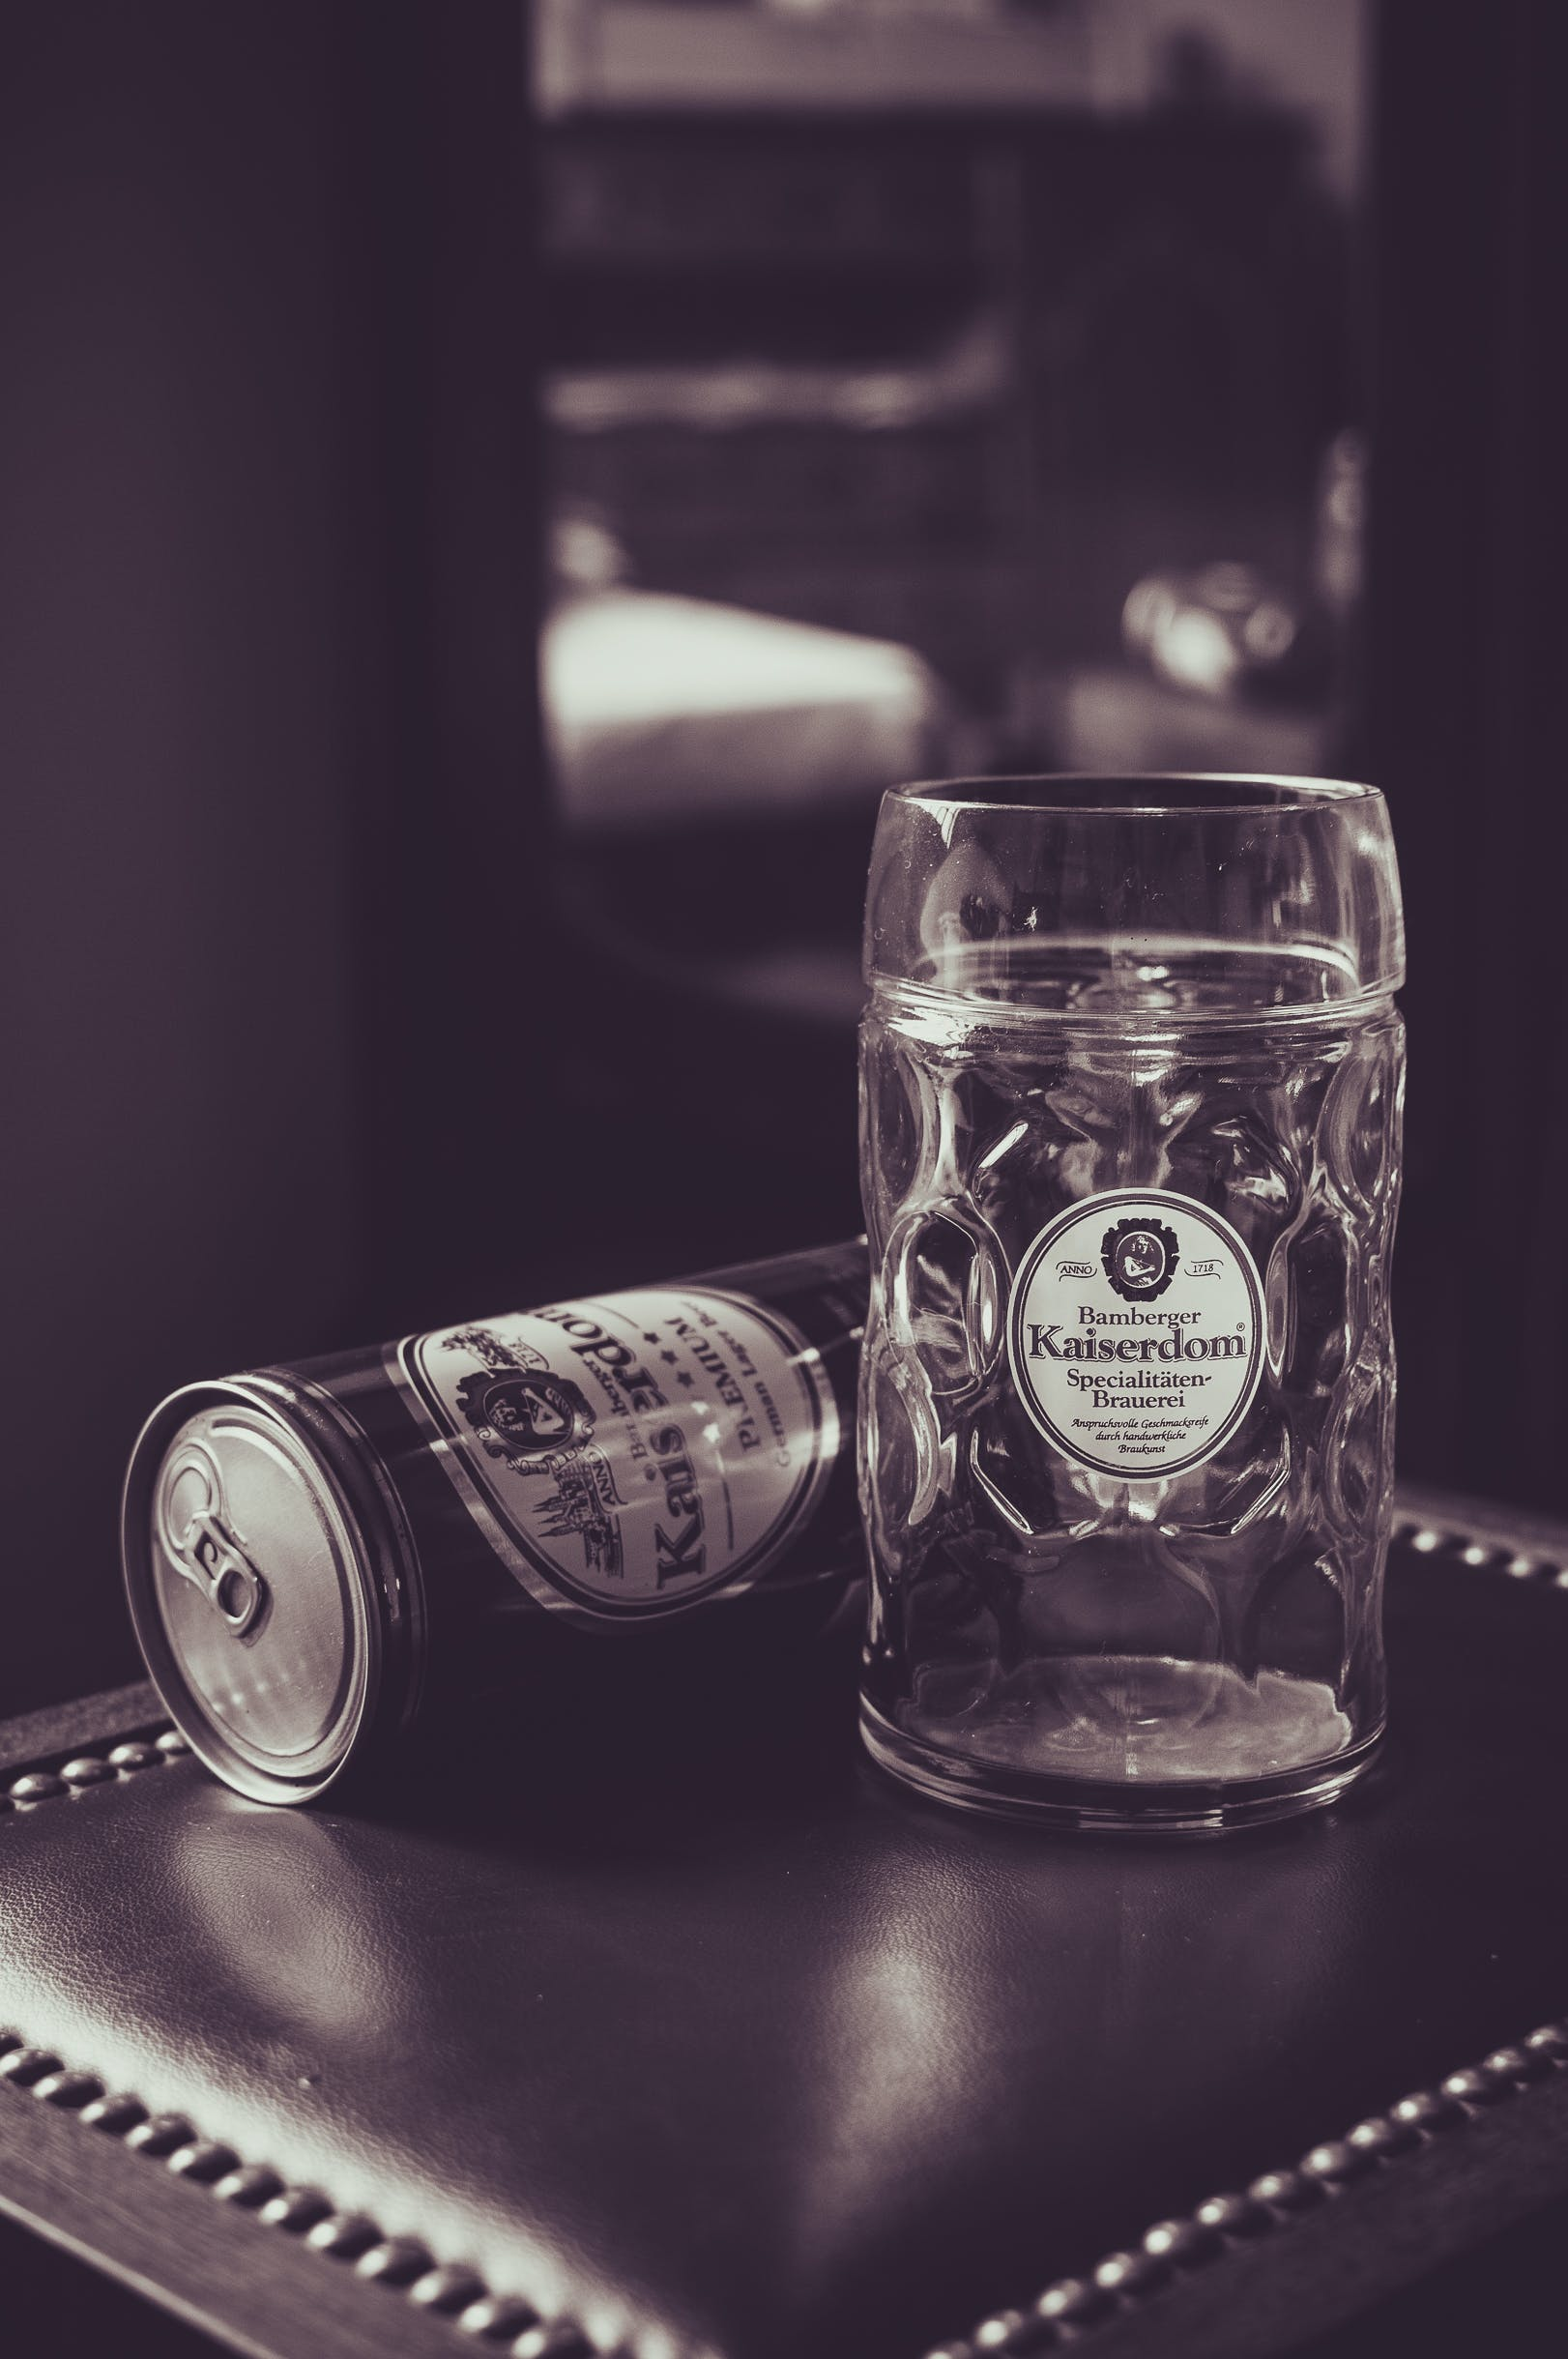 Free stock photo of beer, can, cup, glass